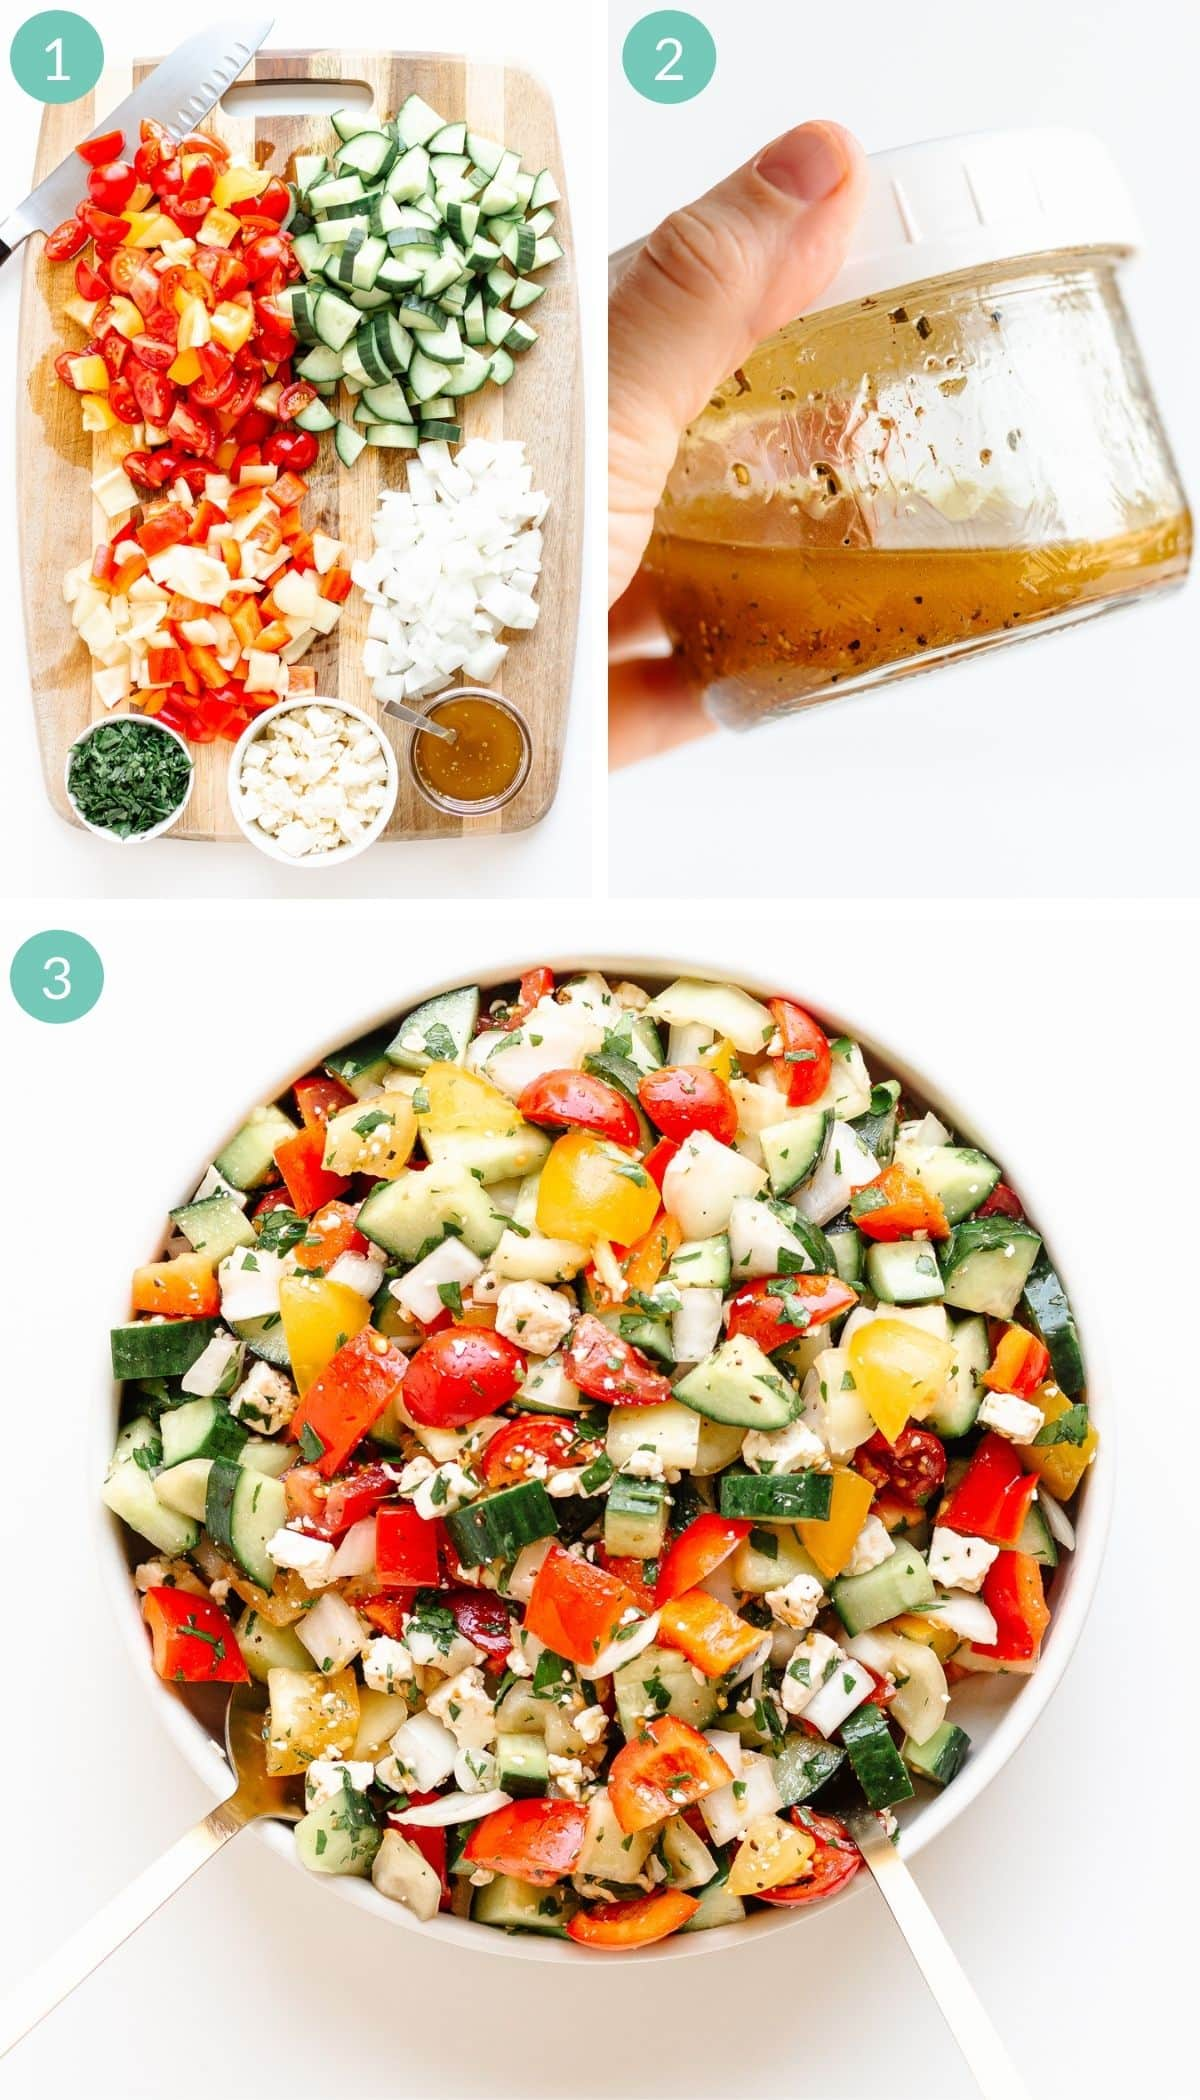 Photo collage showing step by step how to make a summer chopped veggie salad.